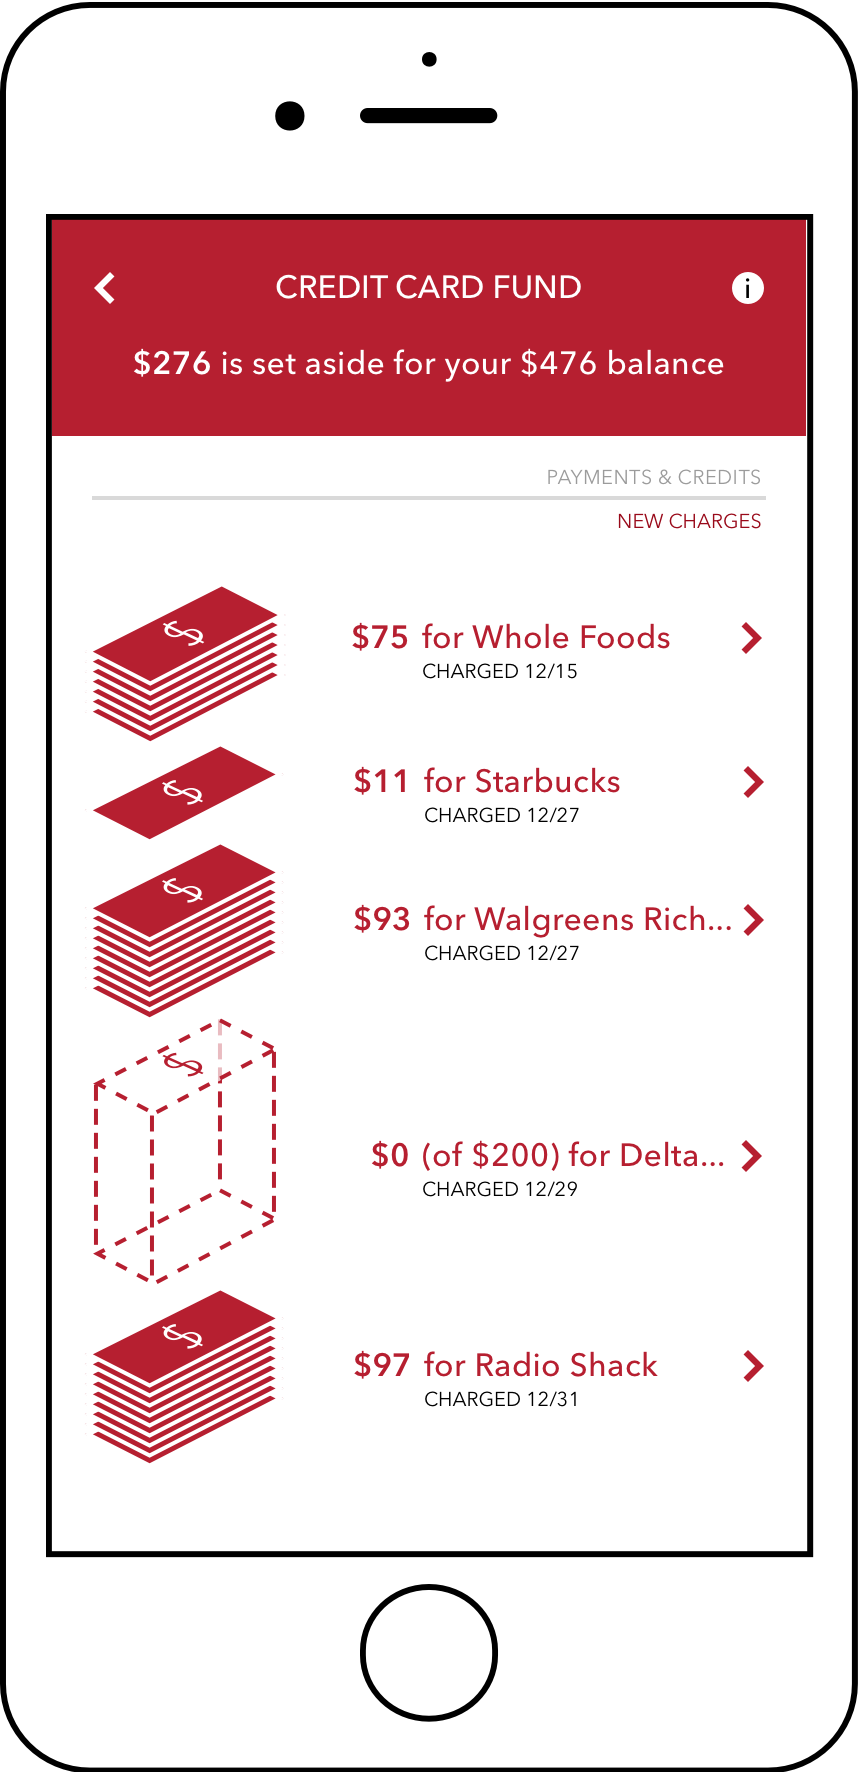 Always have the money to pay for your charges - With every card swipe, we set aside money for when your bill comes (though you can opt-out on individual purchases if you'd like).